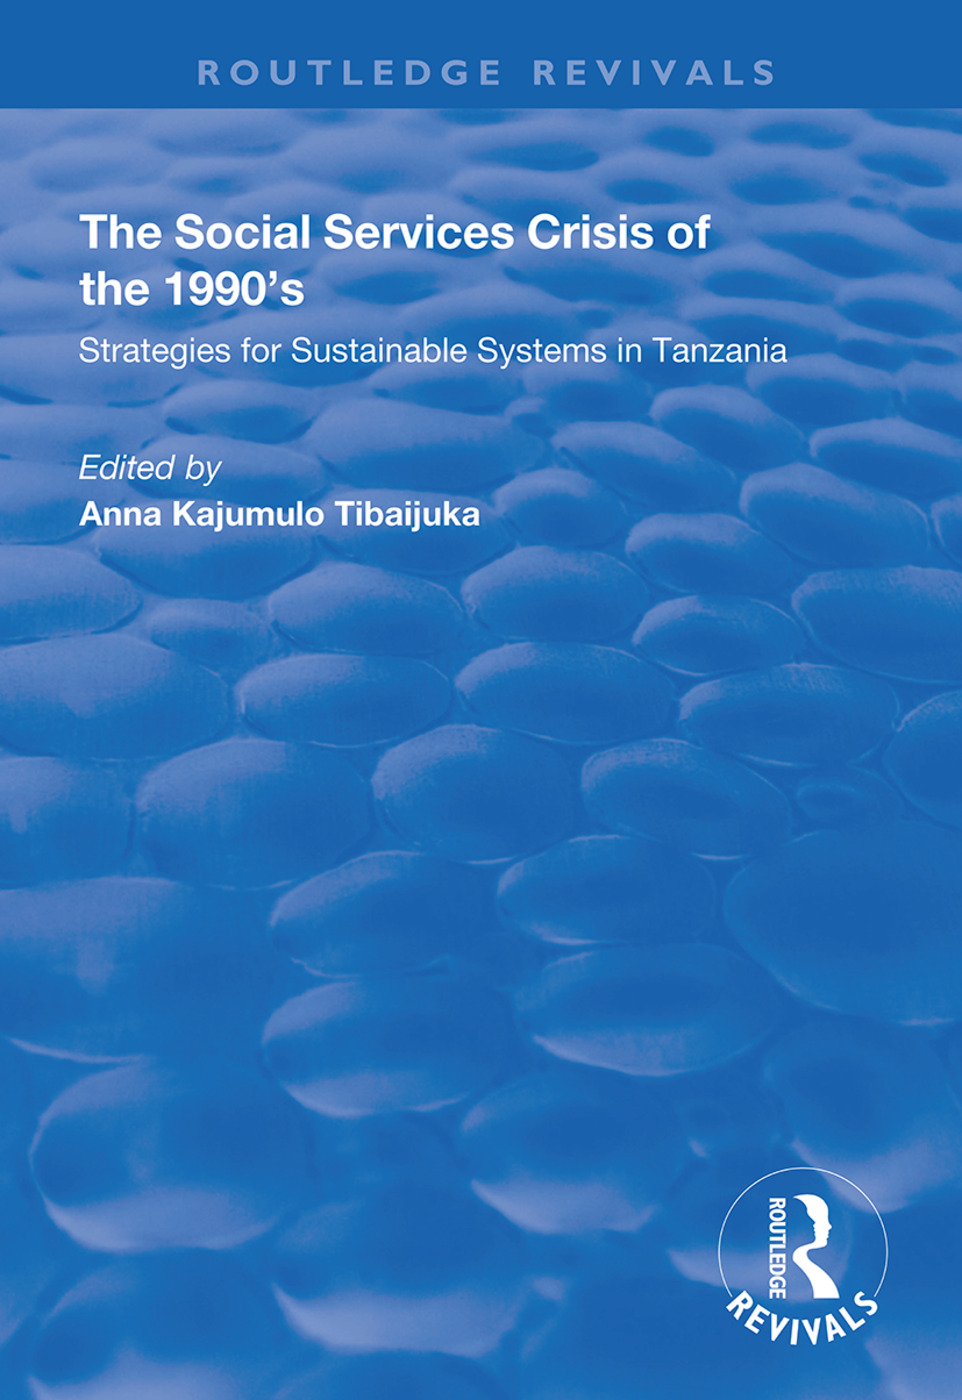 The Social Services Crisis of the 1990s: Strategies for Sustainable Systems in Tanzania book cover